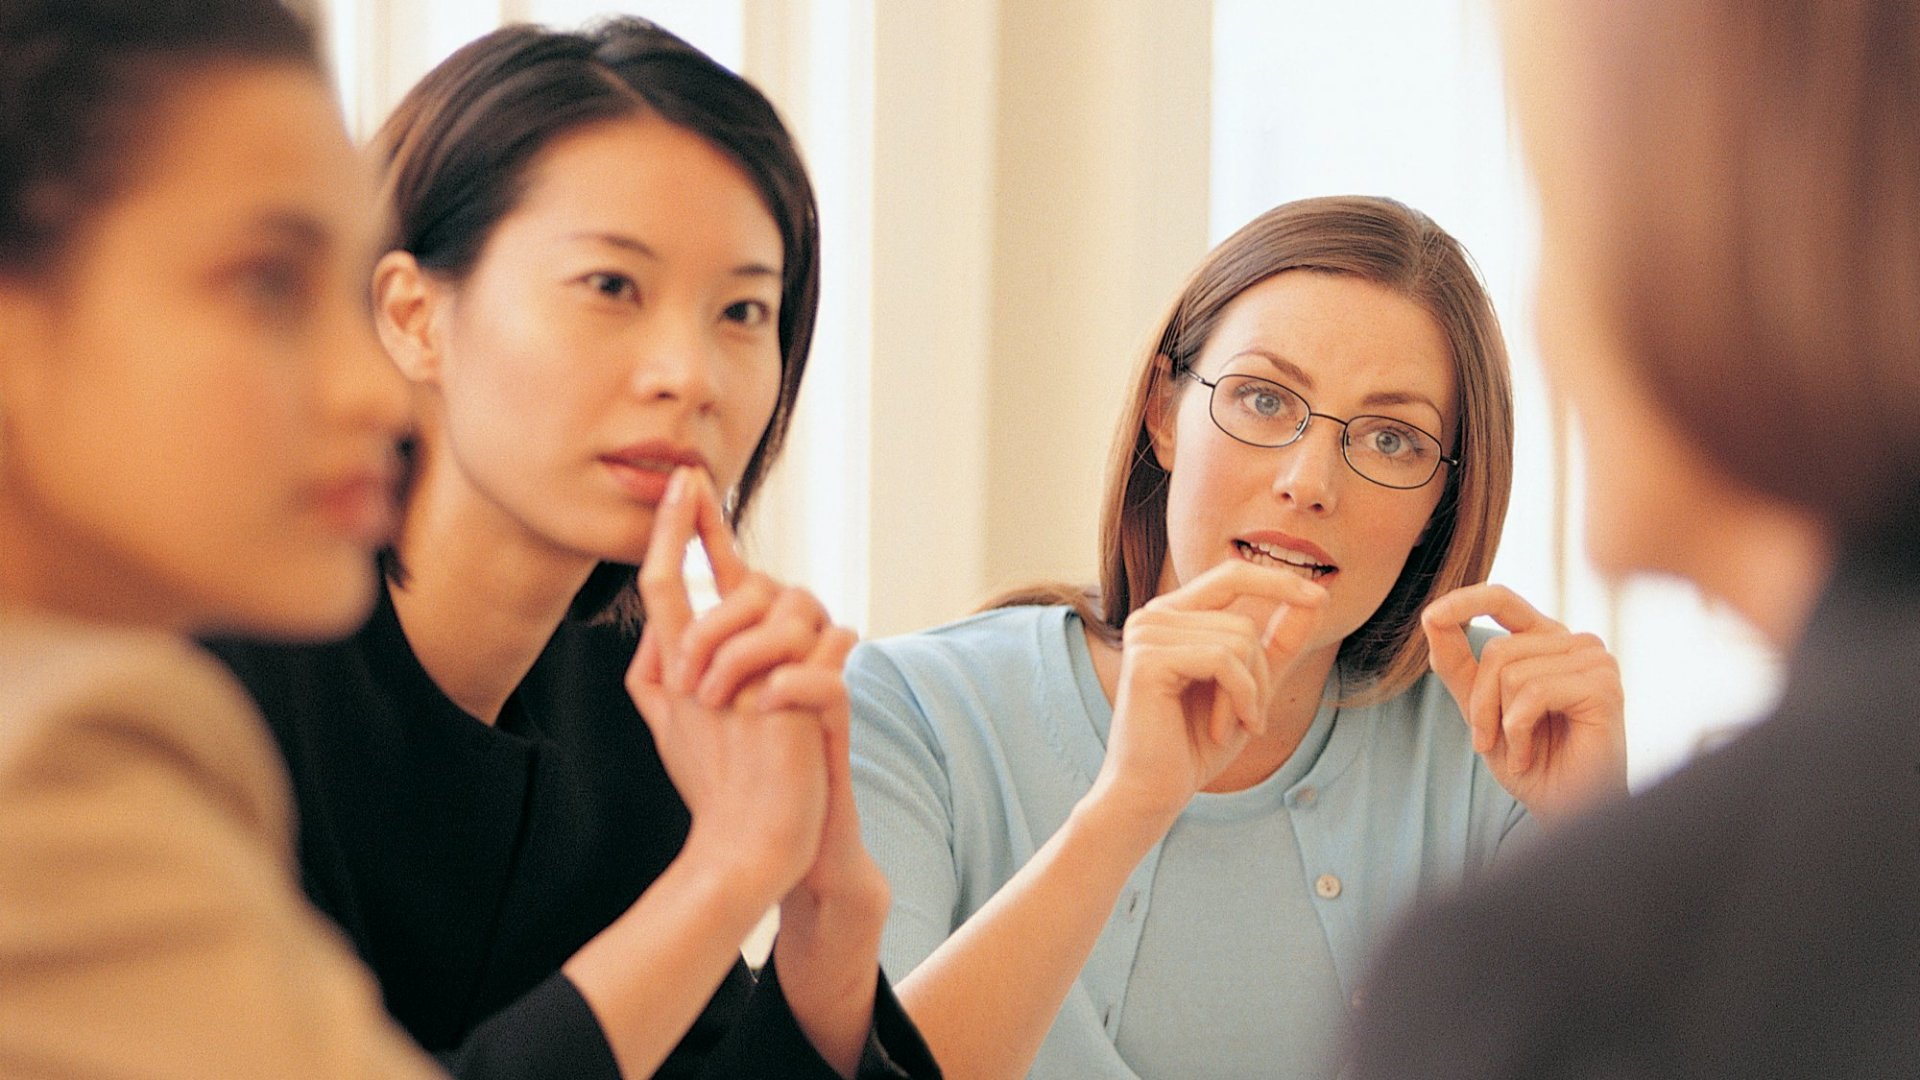 Study Finds Disturbing Reasons Why So Few Women Are Leaders